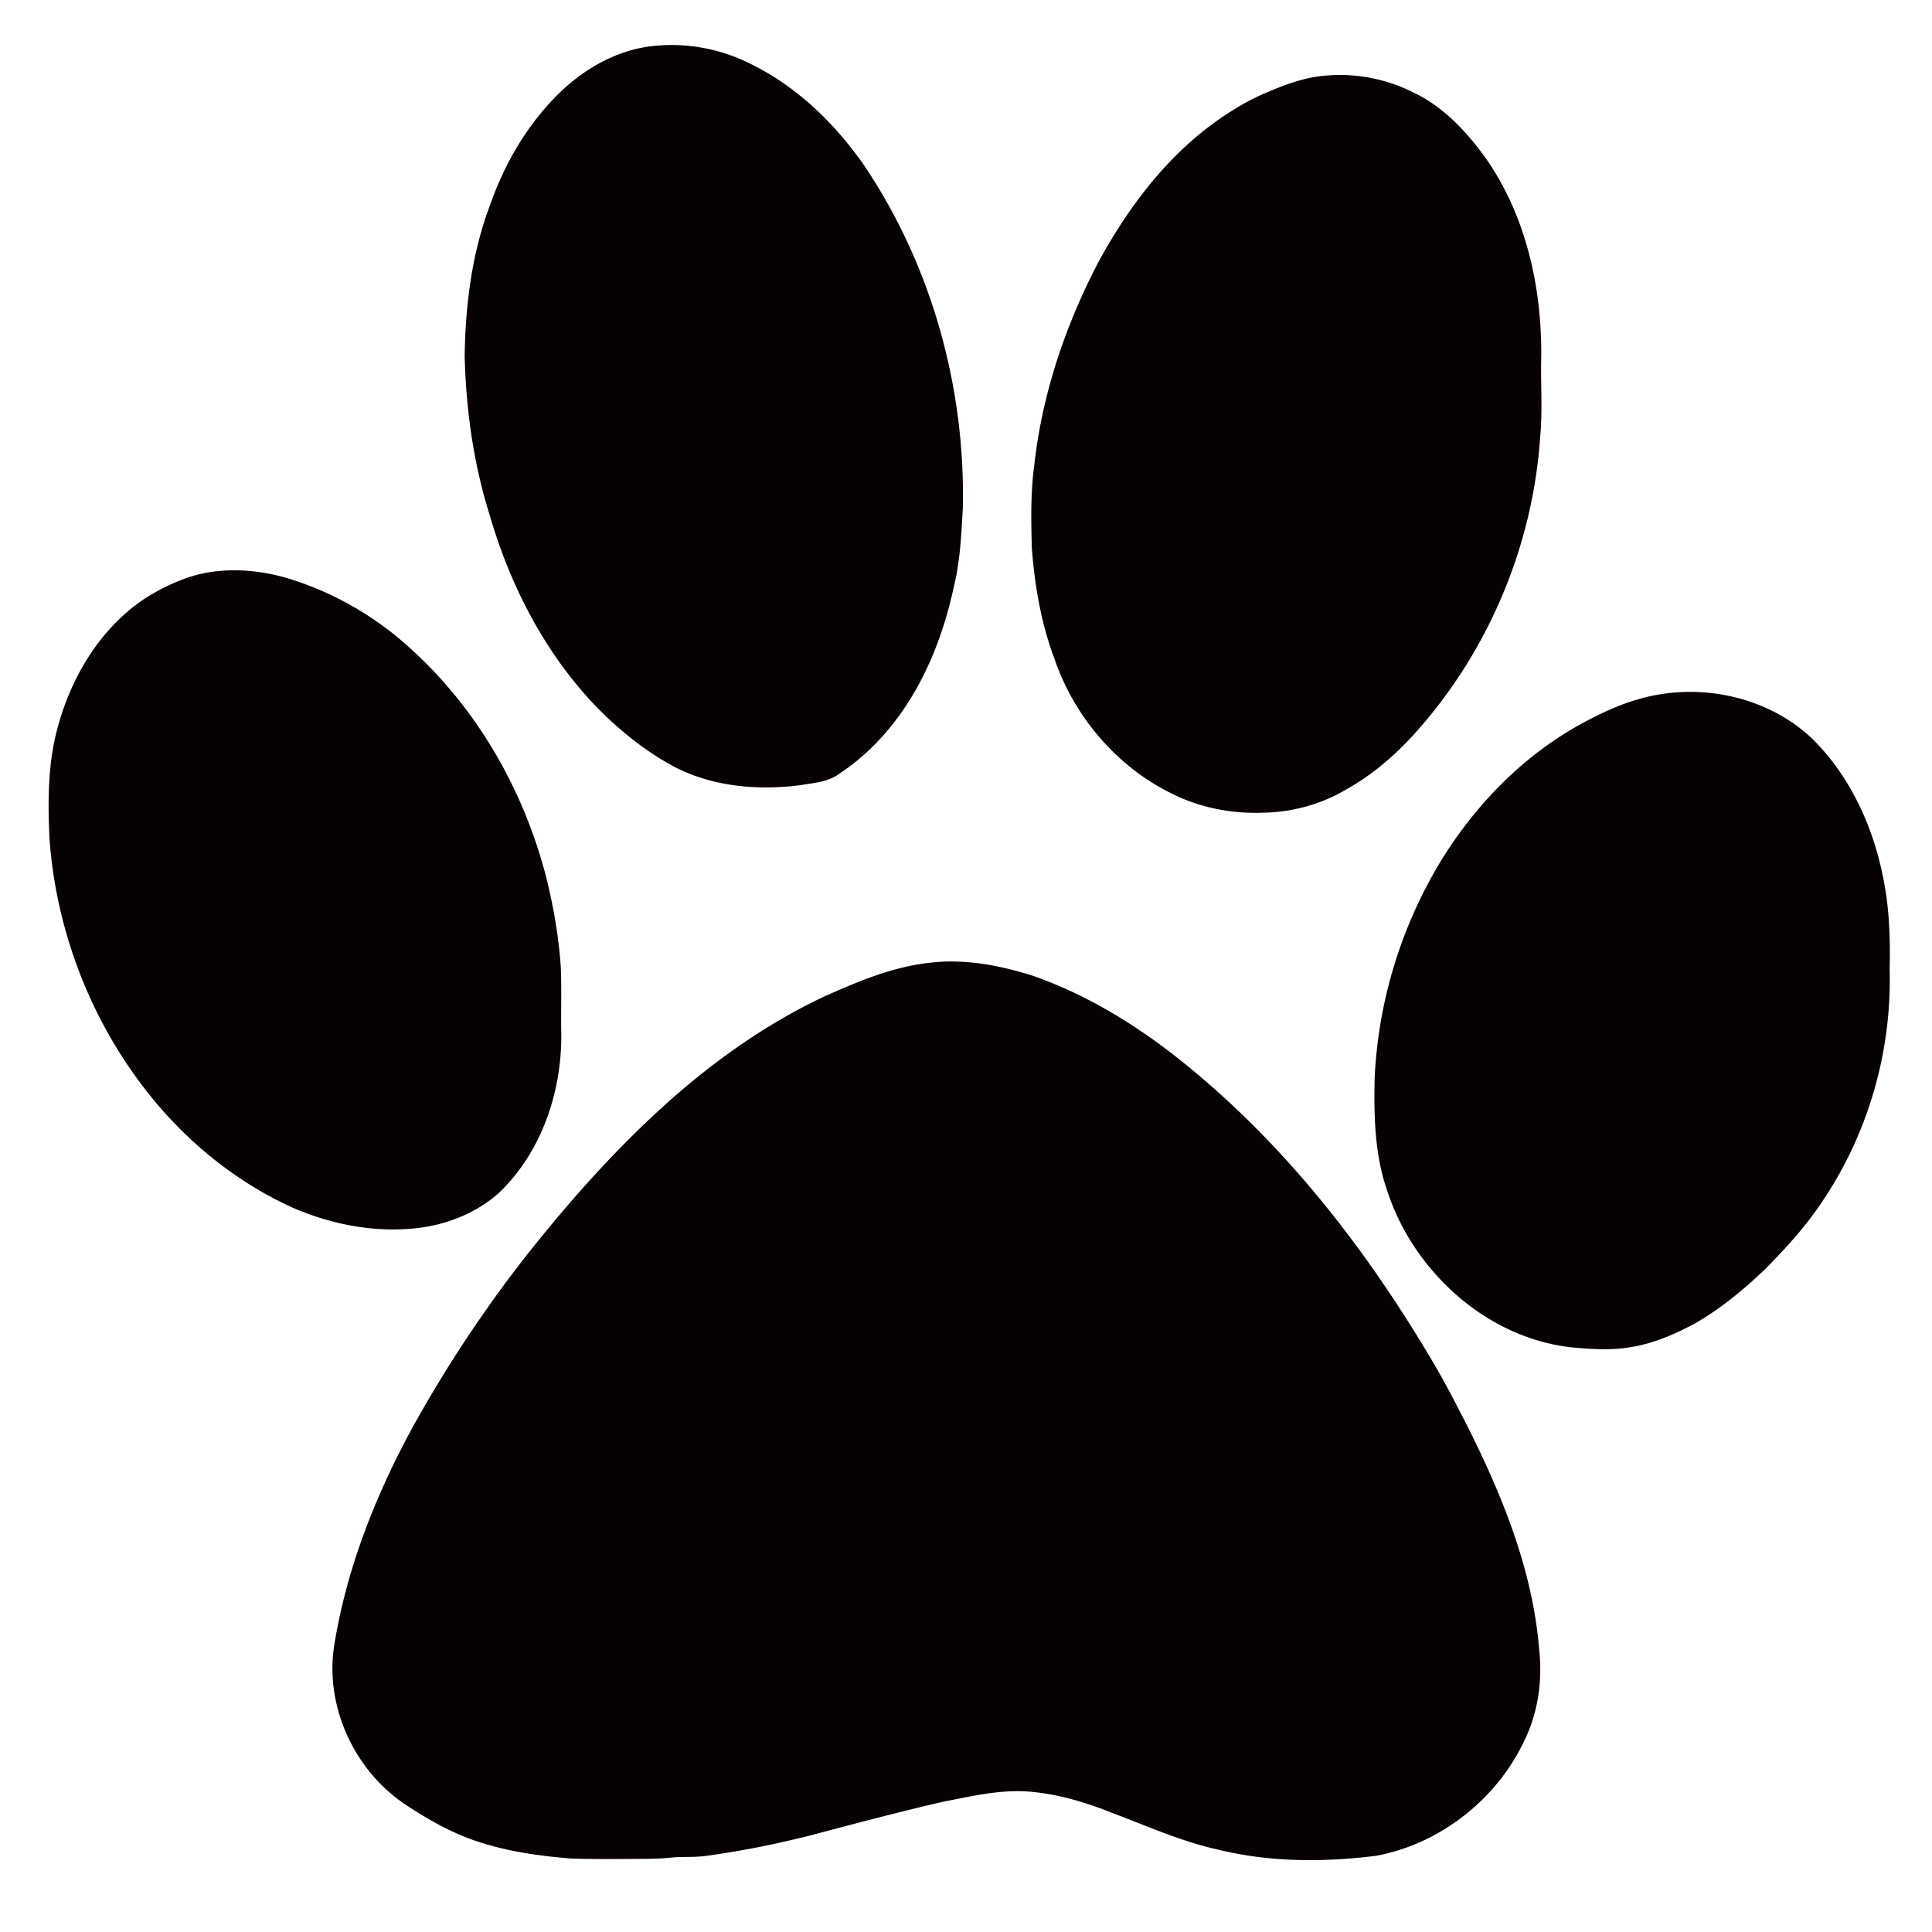 Dog paw print free download clip art on